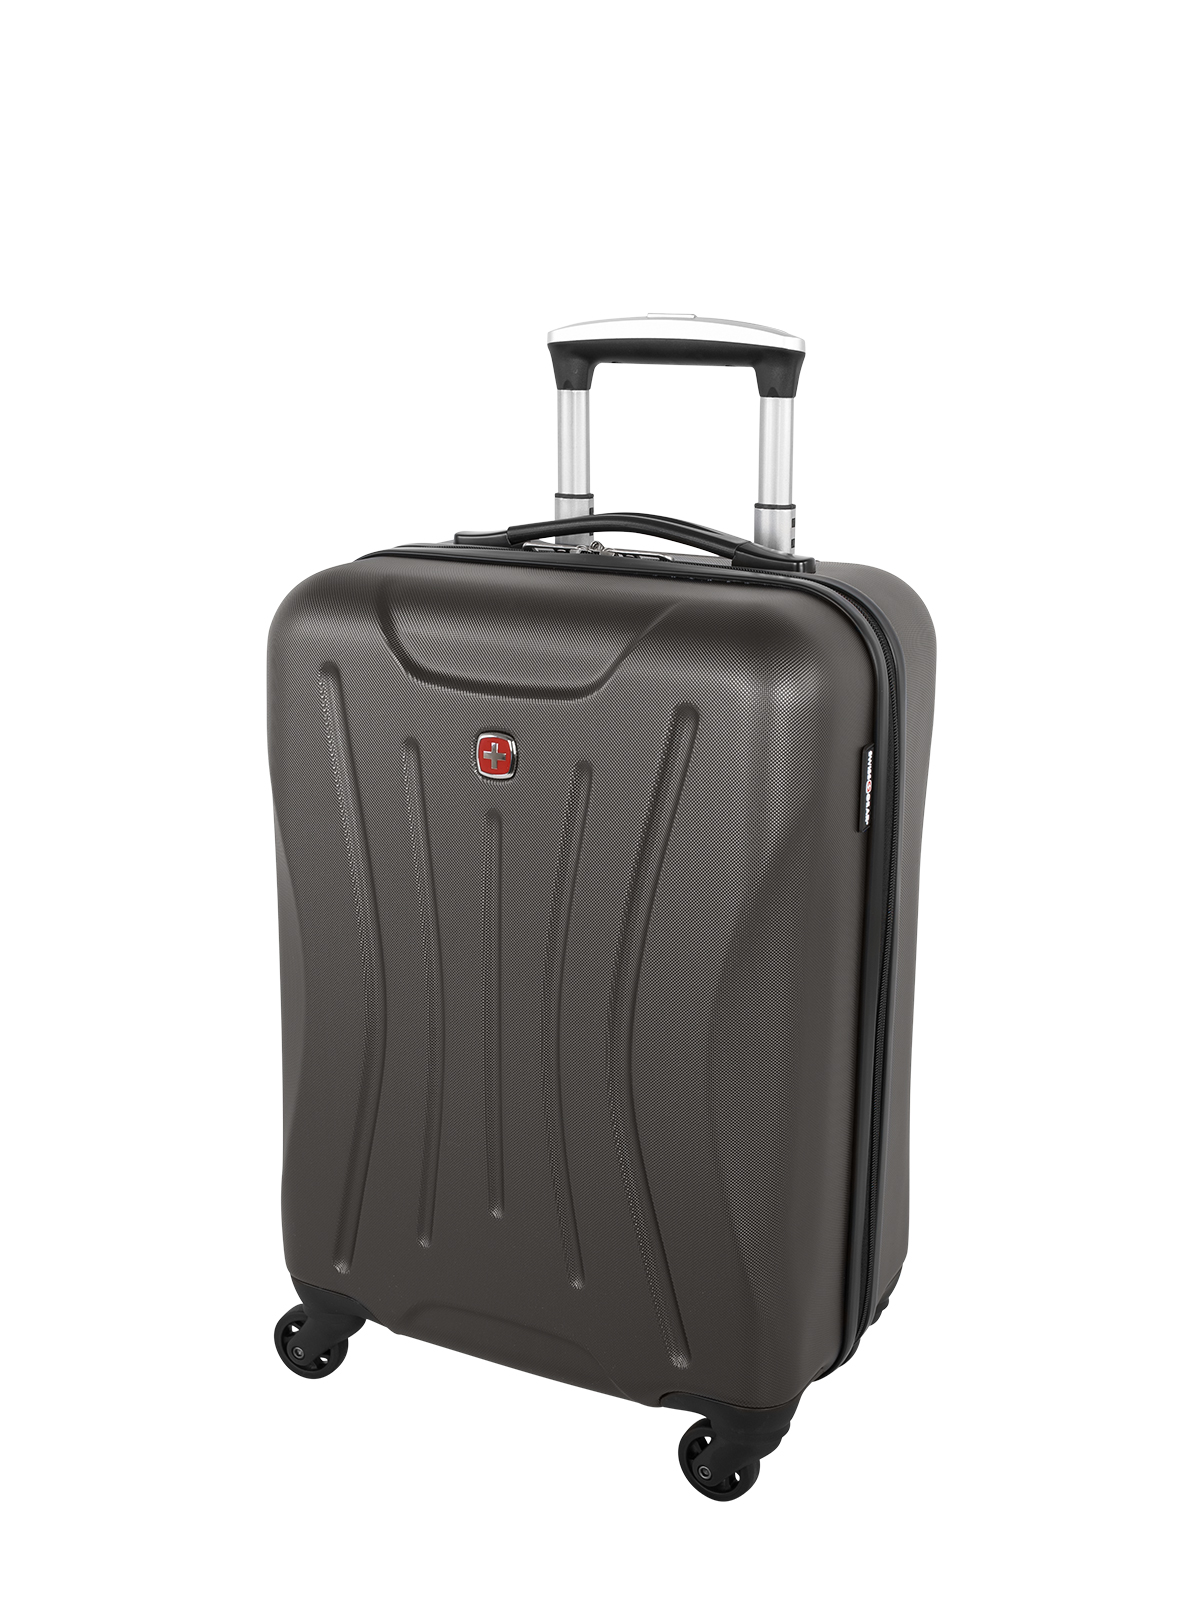 swiss gear fiesta collection carry on luggage holiday